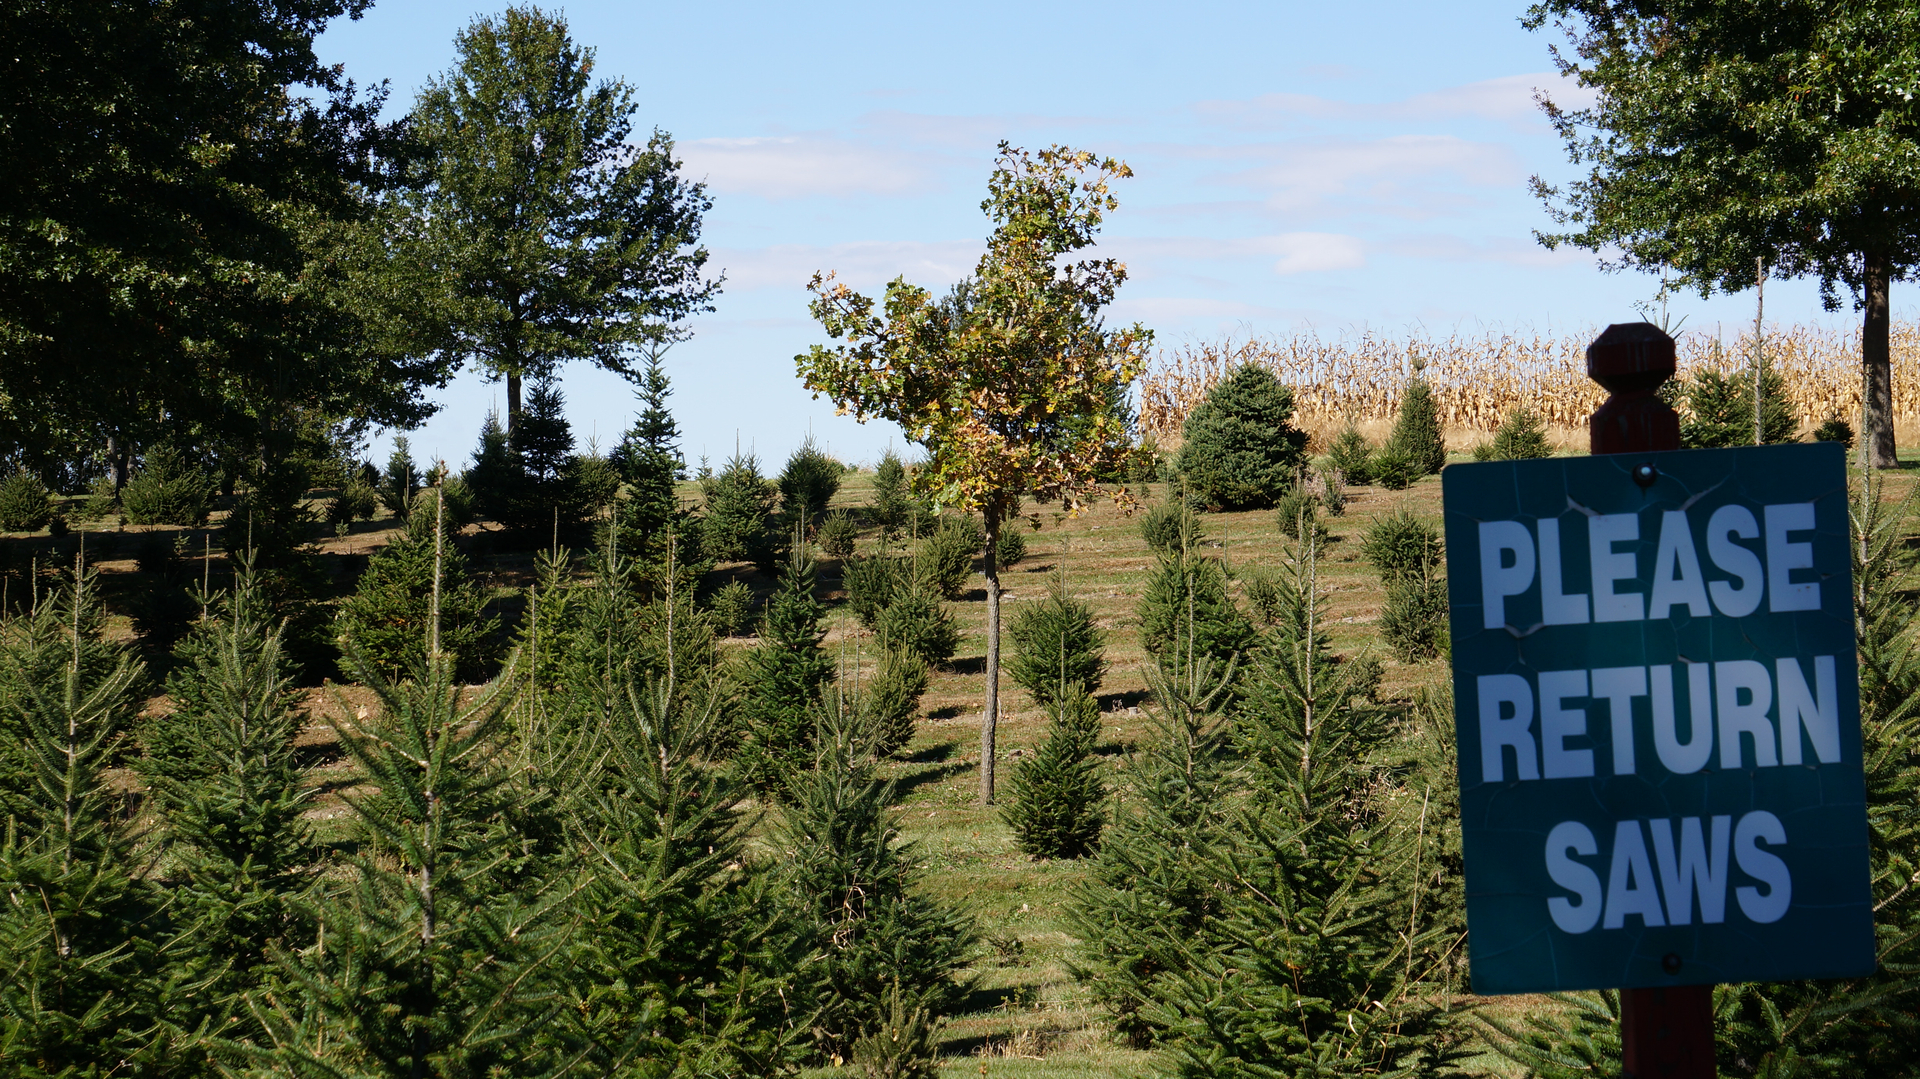 Camelot Christmas Tree Farm